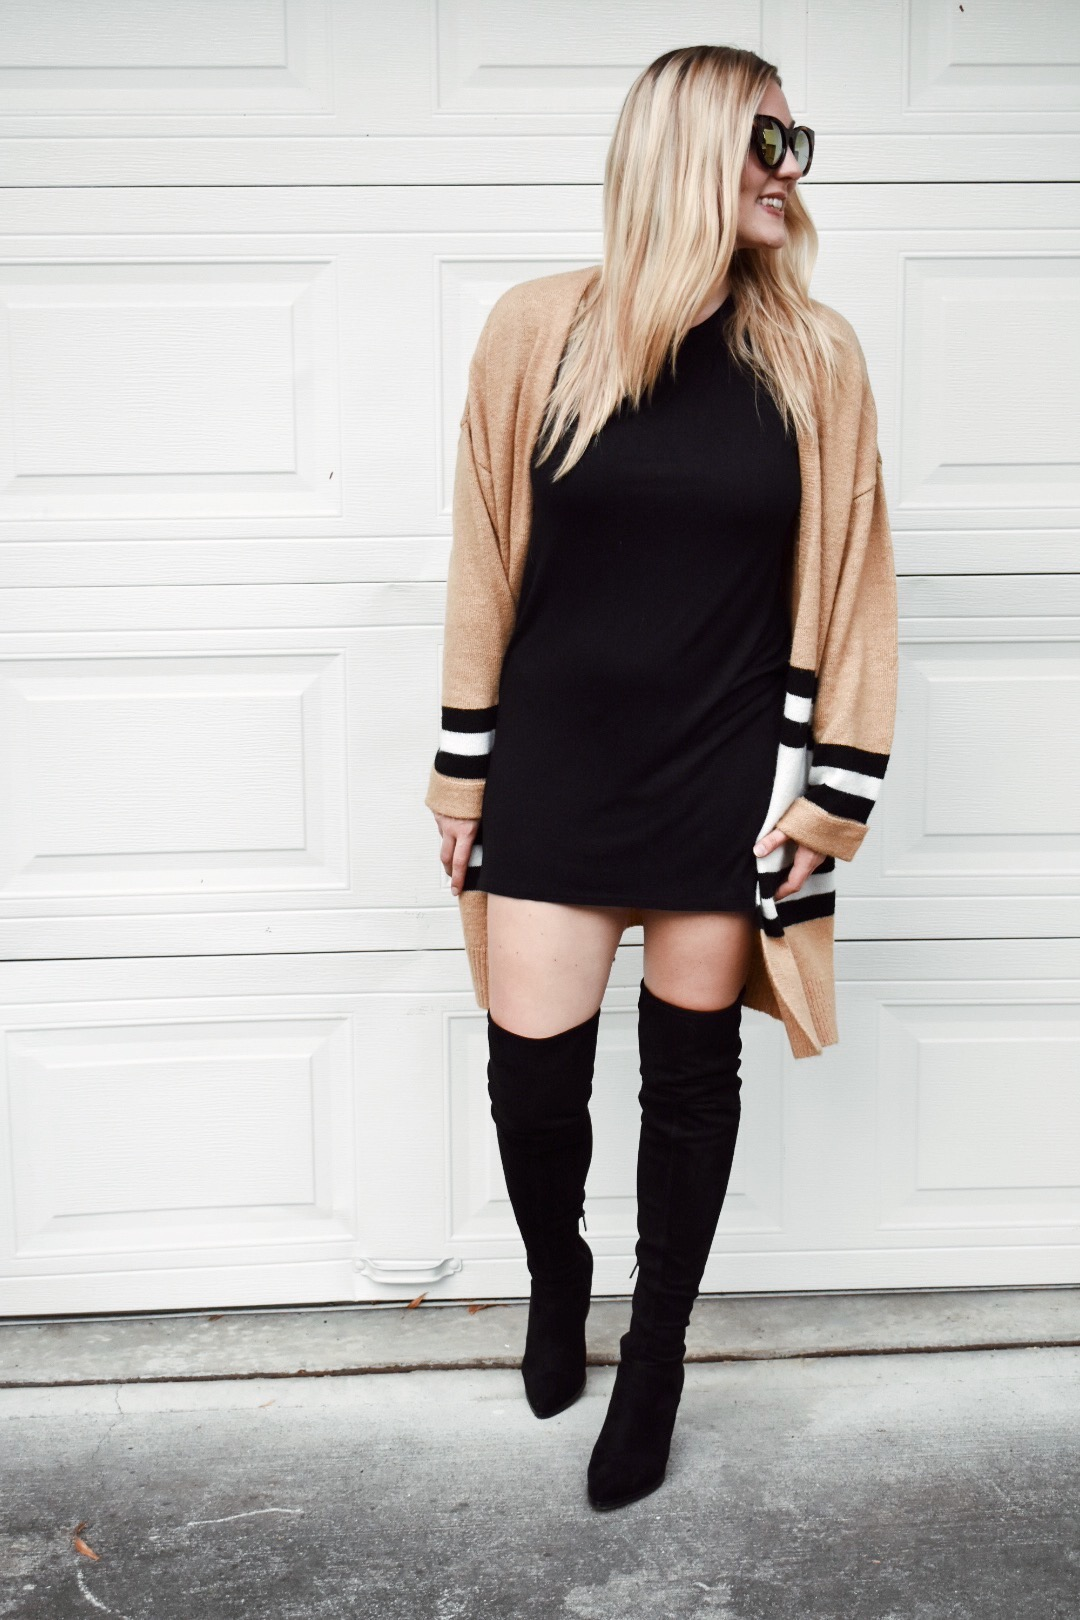 bc2b4aca8a3e Black t shirt dress styled with oversized topshop cardigan and over the  knee boots ...